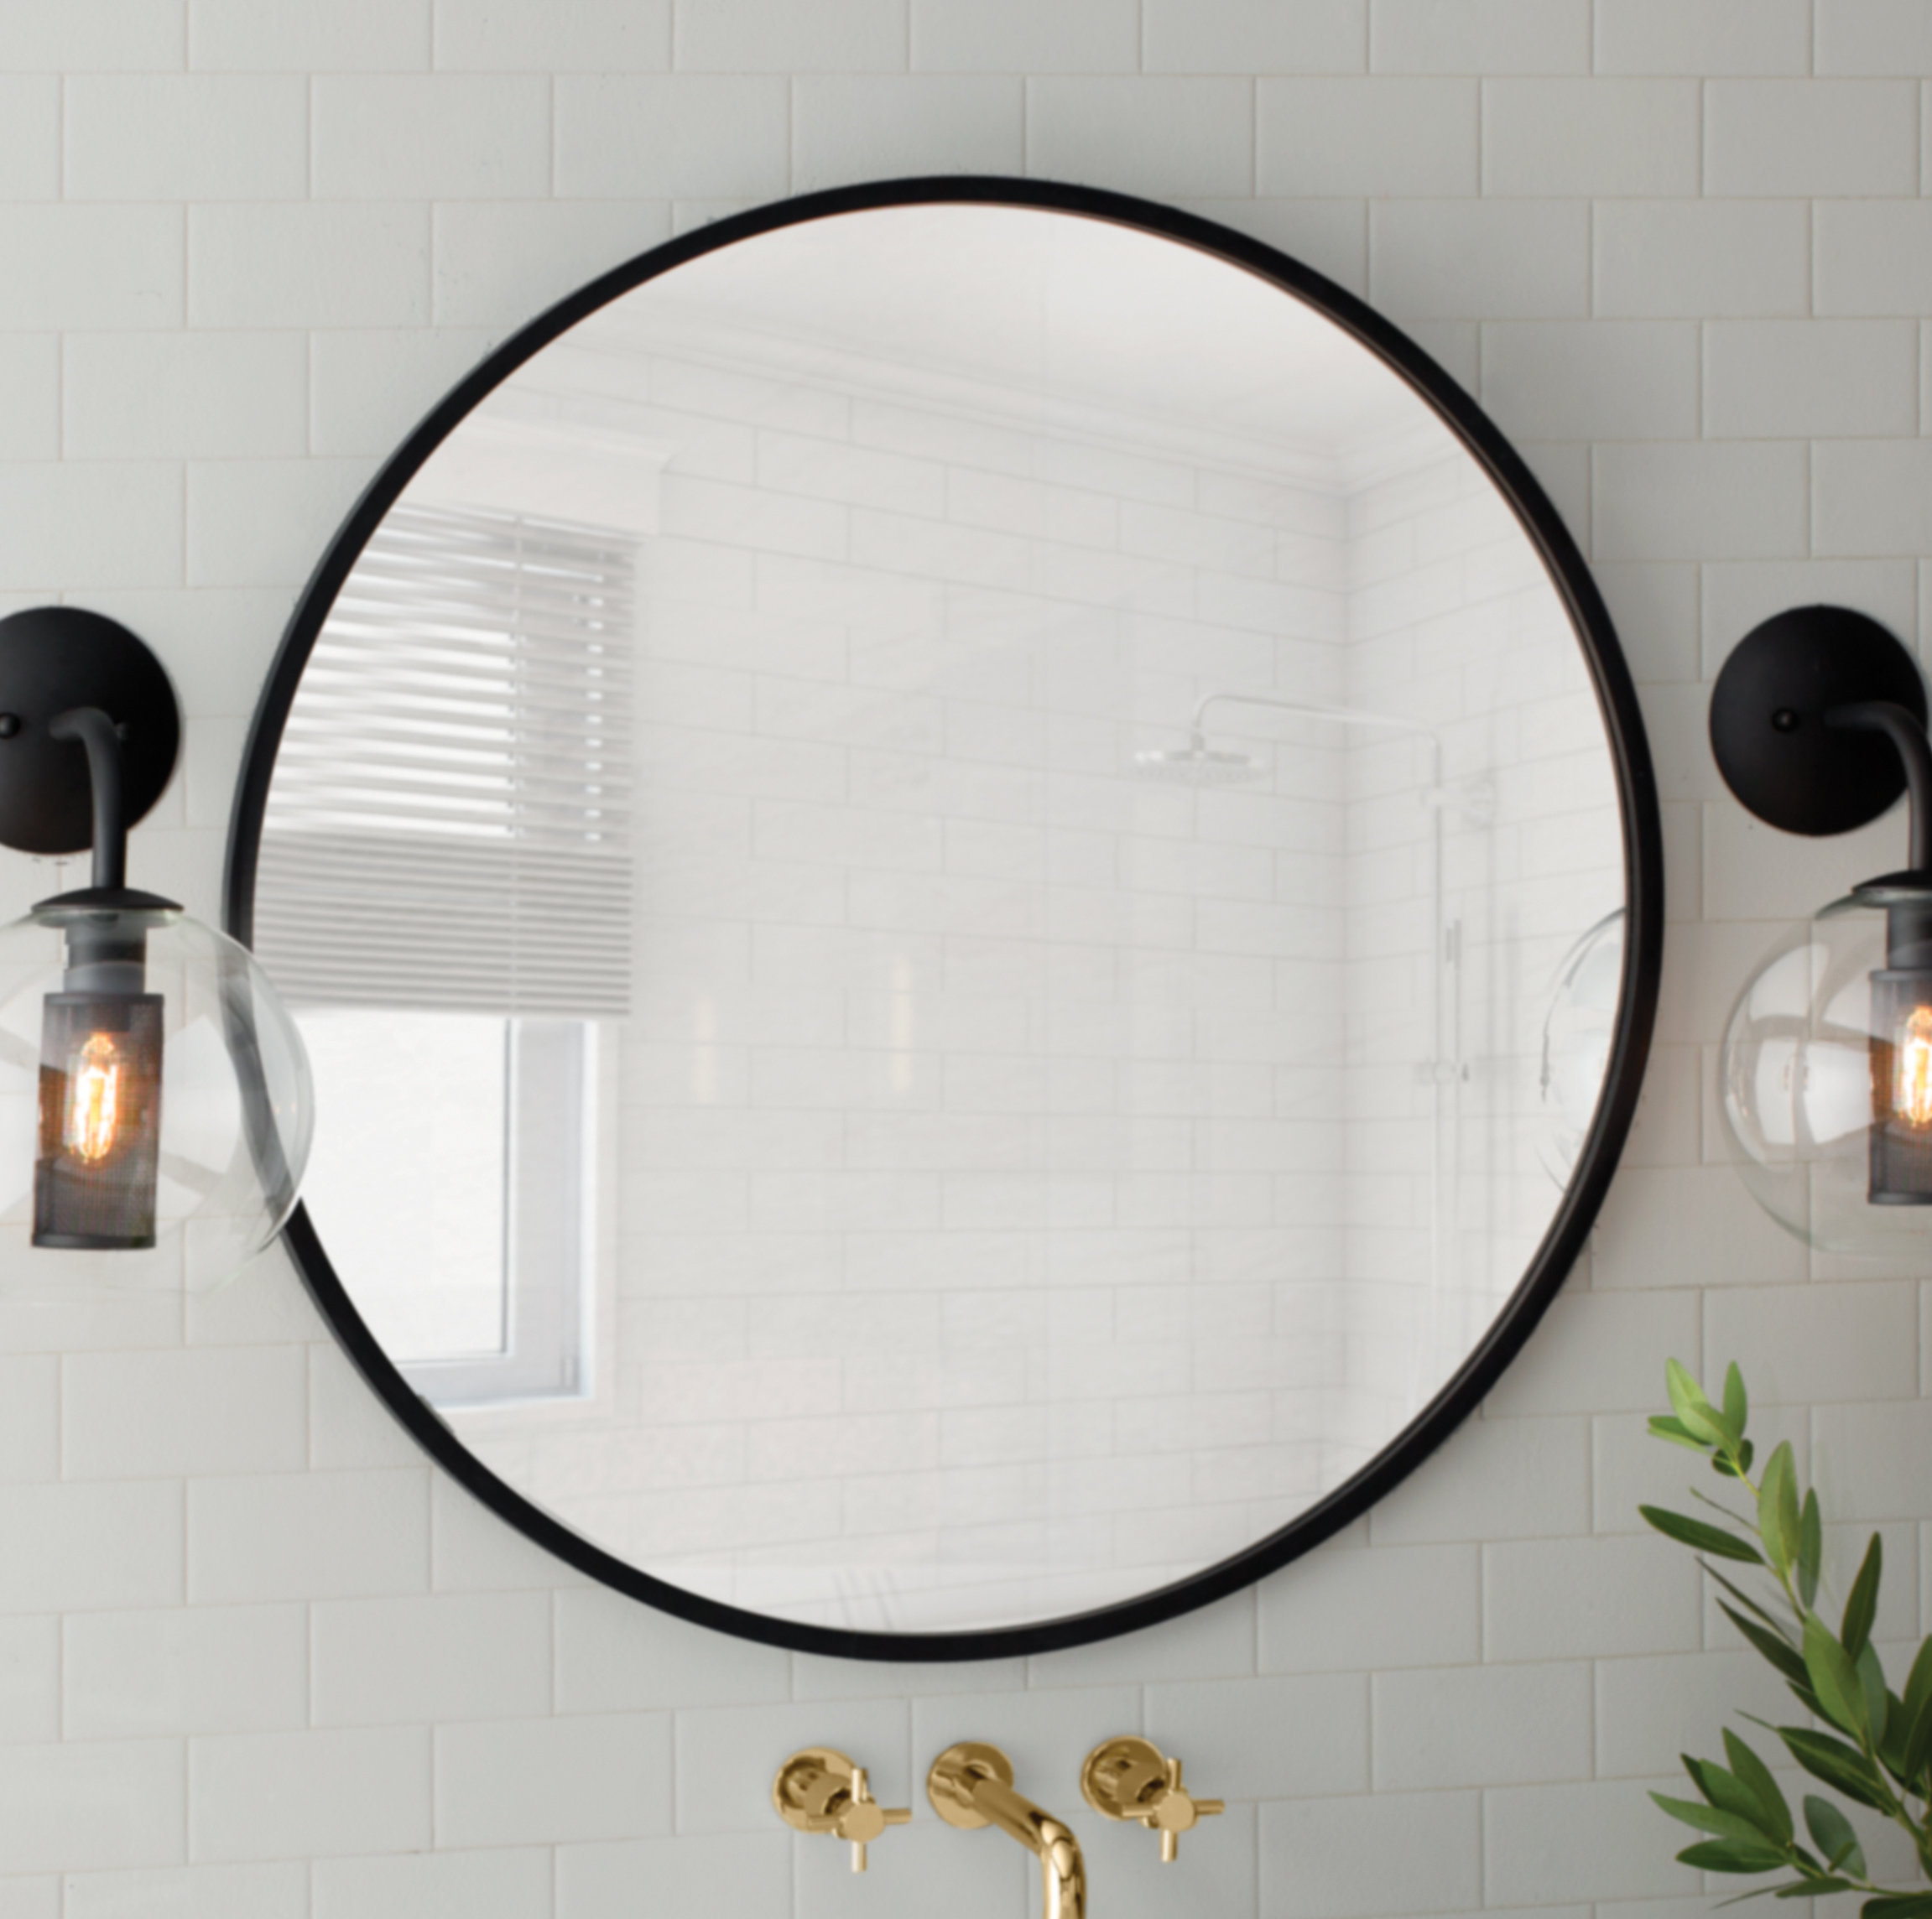 Modern & Contemporary 40 Inch Round Mirror | Allmodern Throughout Celeste Frameless Round Wall Mirrors (View 14 of 20)